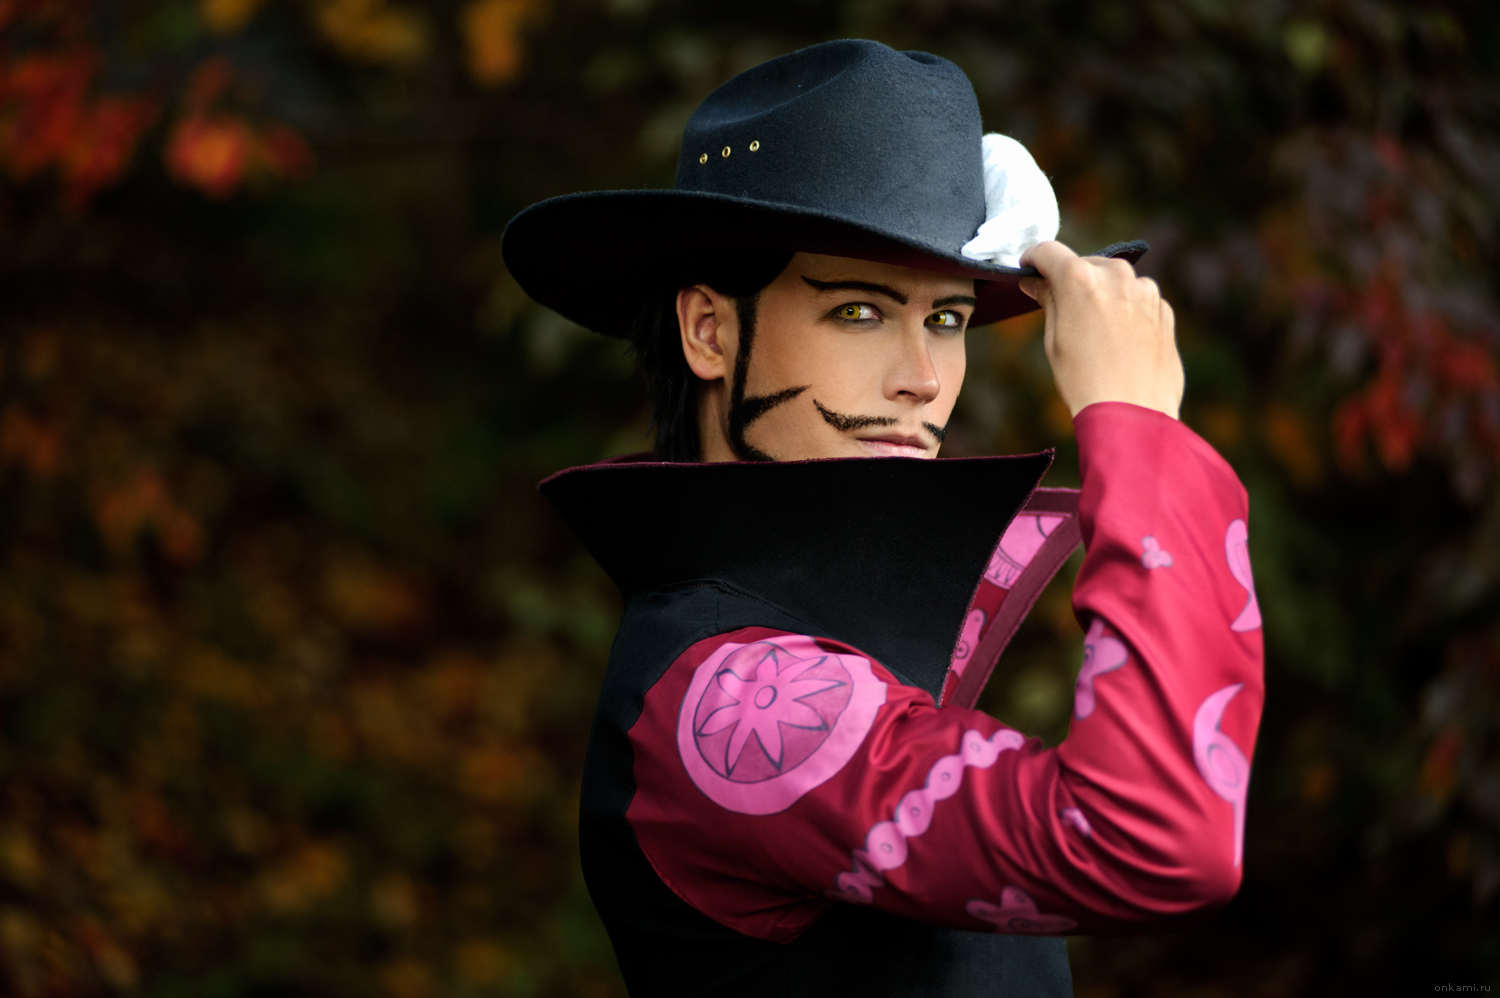 Dracule Mihawk - One Piece by Elffi